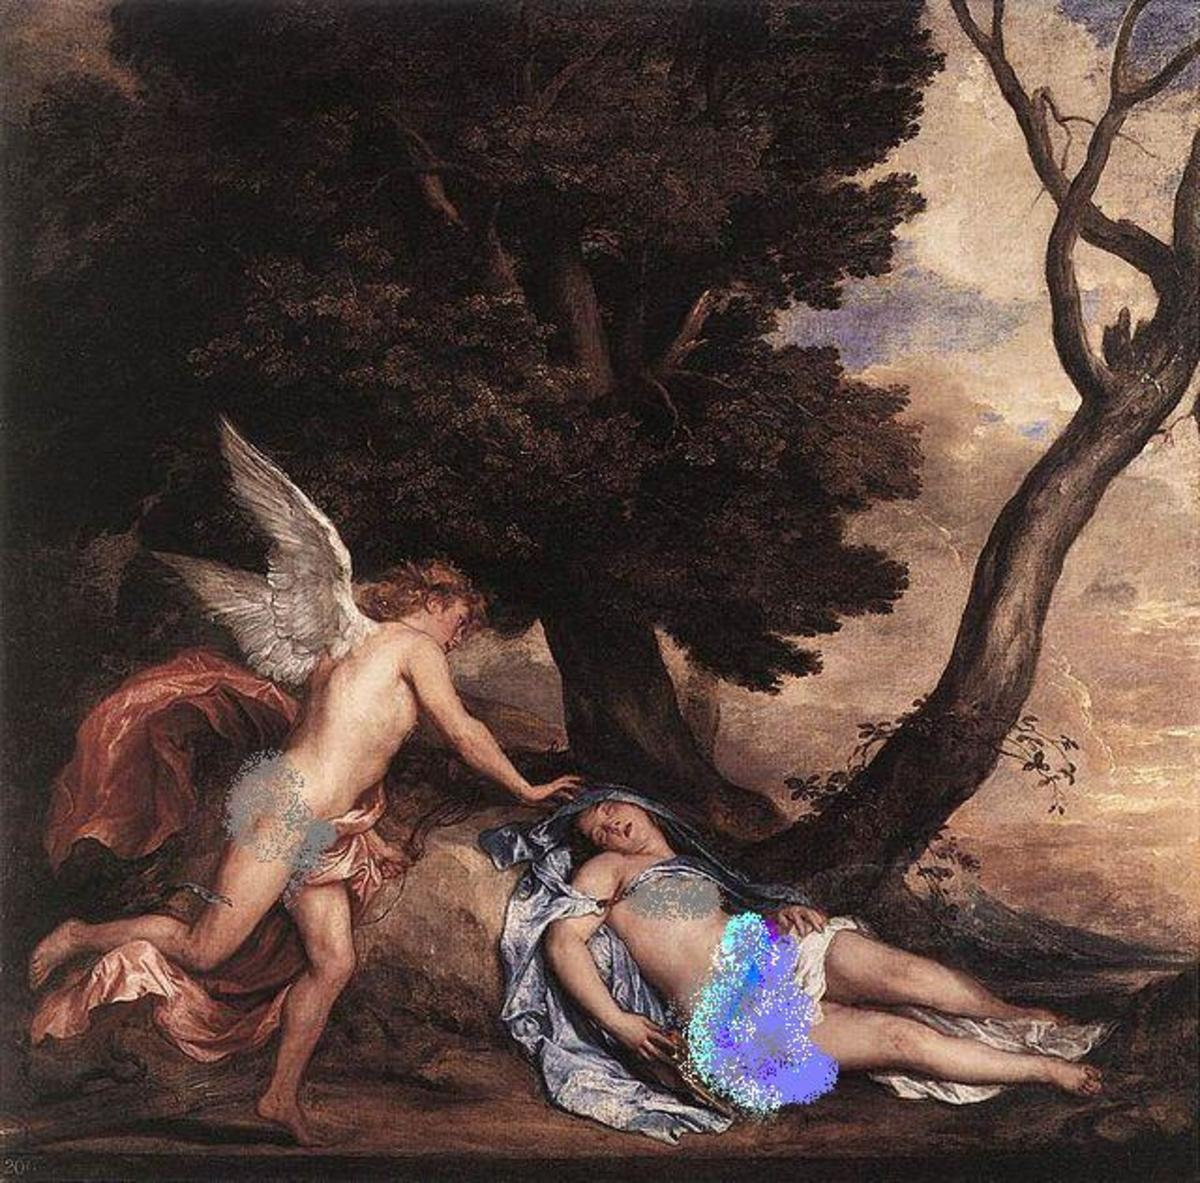 Cupid and Psyche (1639–40) by Anthony van Dyck: Cupid finds the sleeping Psyche